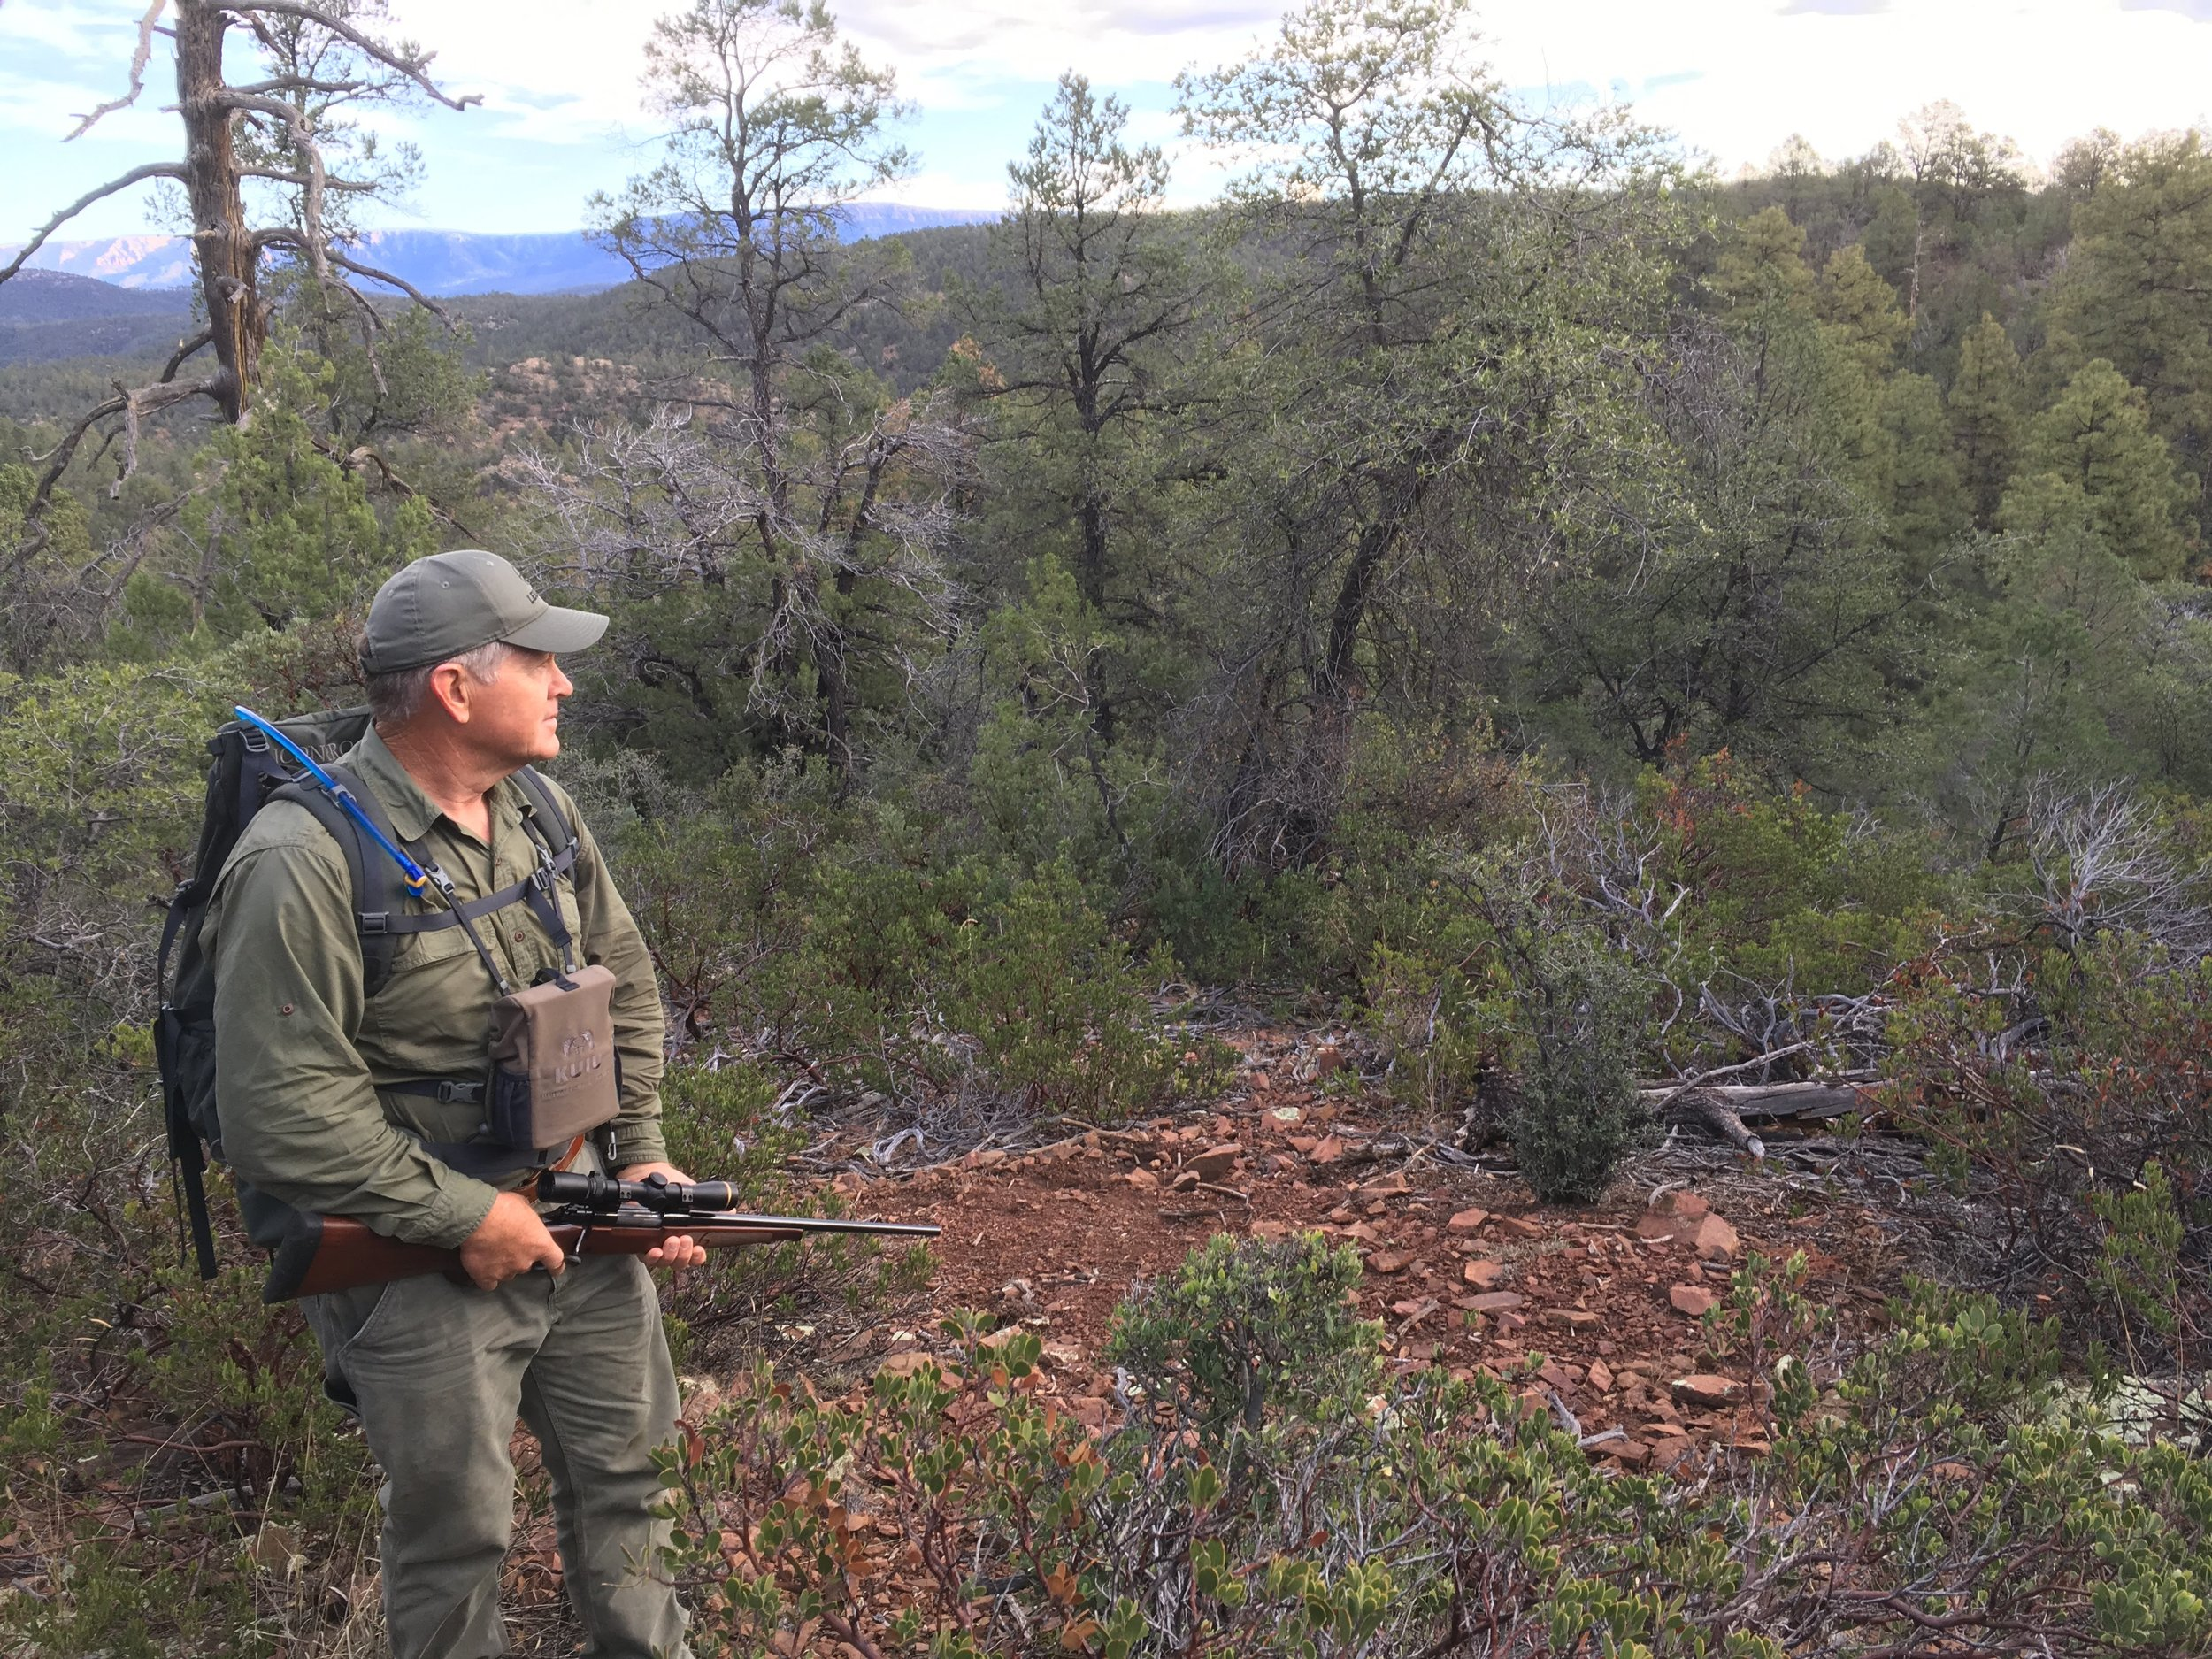 Unit 22 South is a beautiful location to hunt and not far from the Valley.